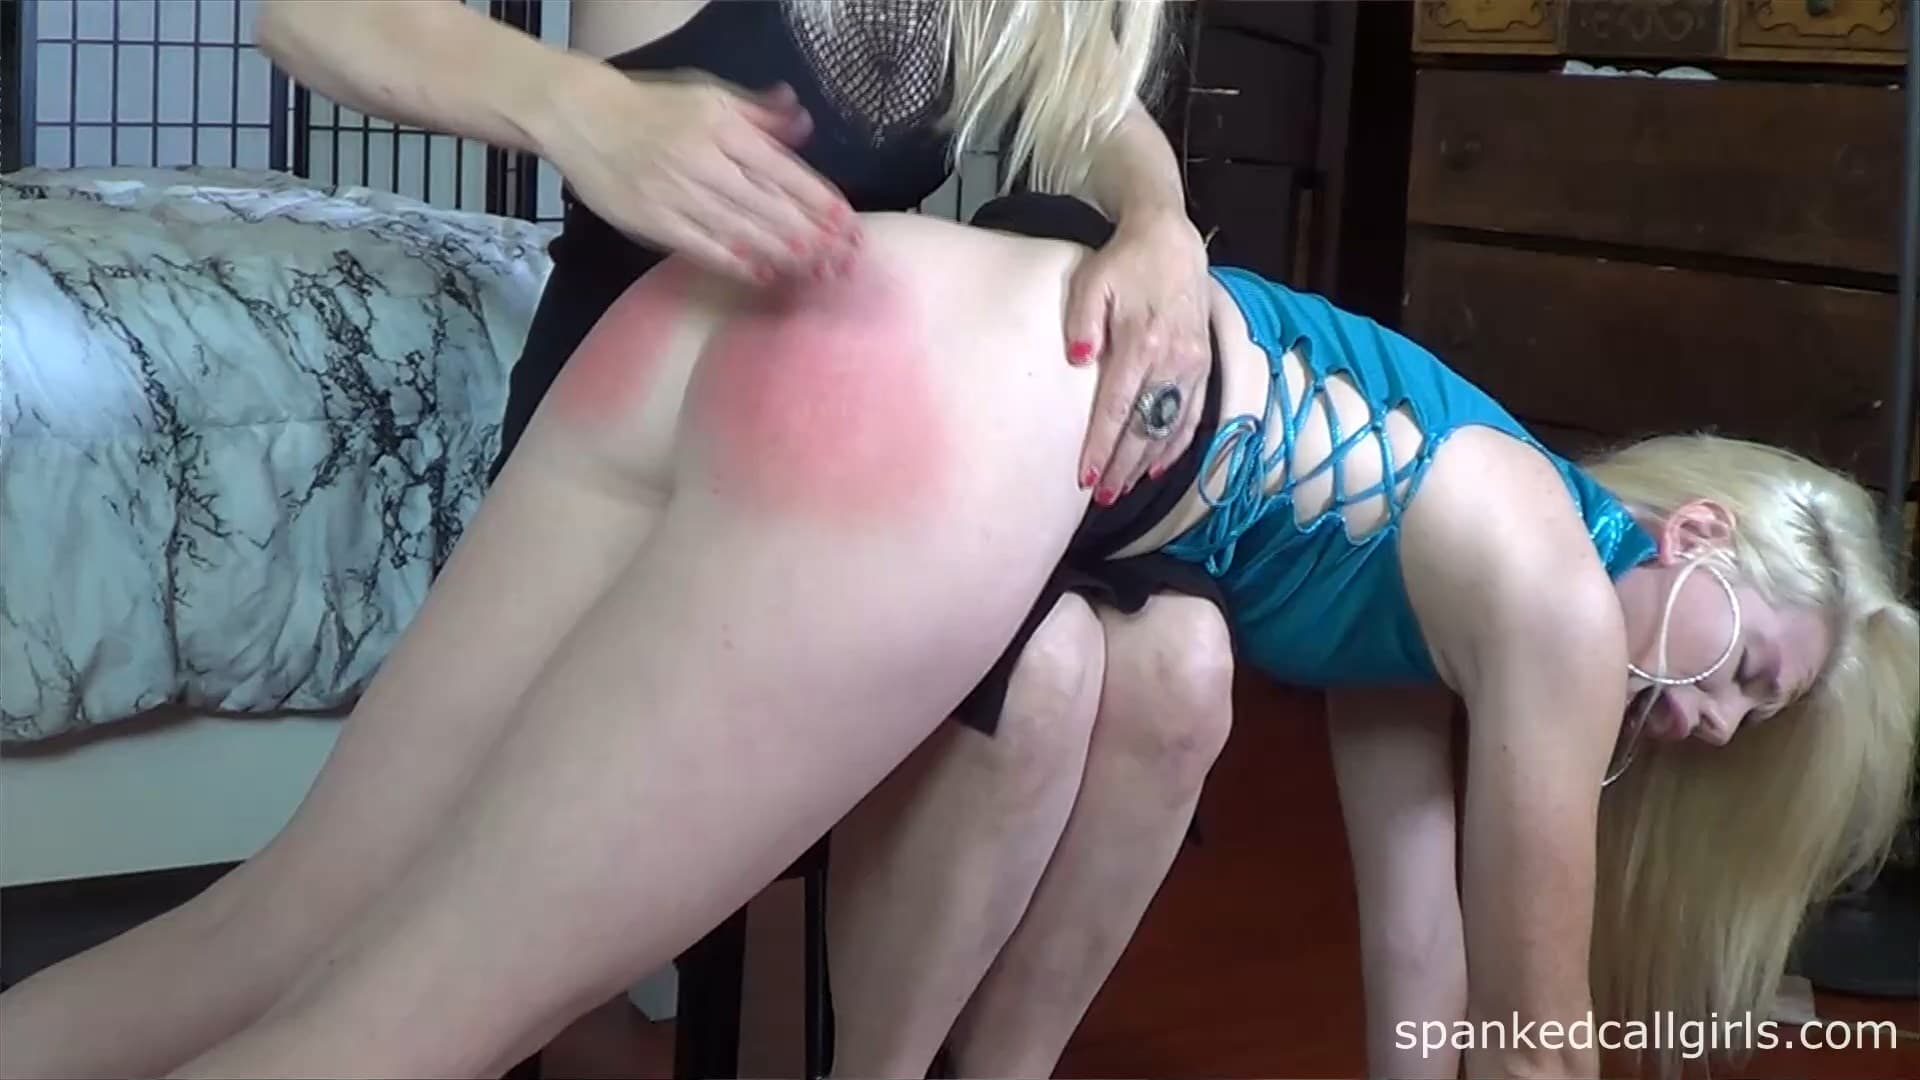 Spanked Call Girls – RM/SD – Clare Fonda, Nikki Sweet – Nikki Sweet Spanked For Bad Attitude